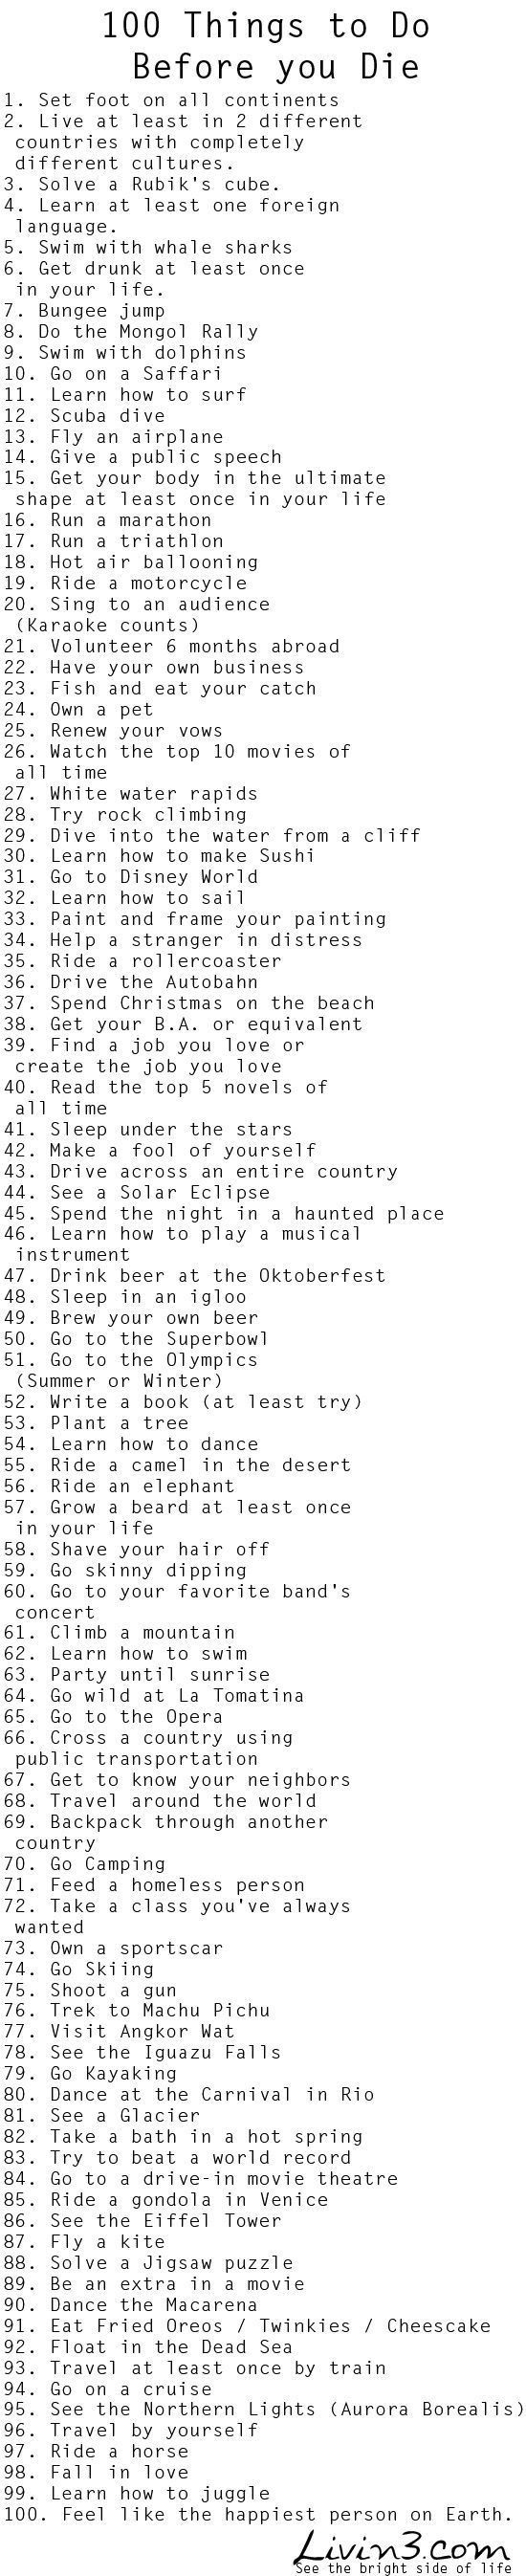 Want to do some of these, but not all! #bucketlist